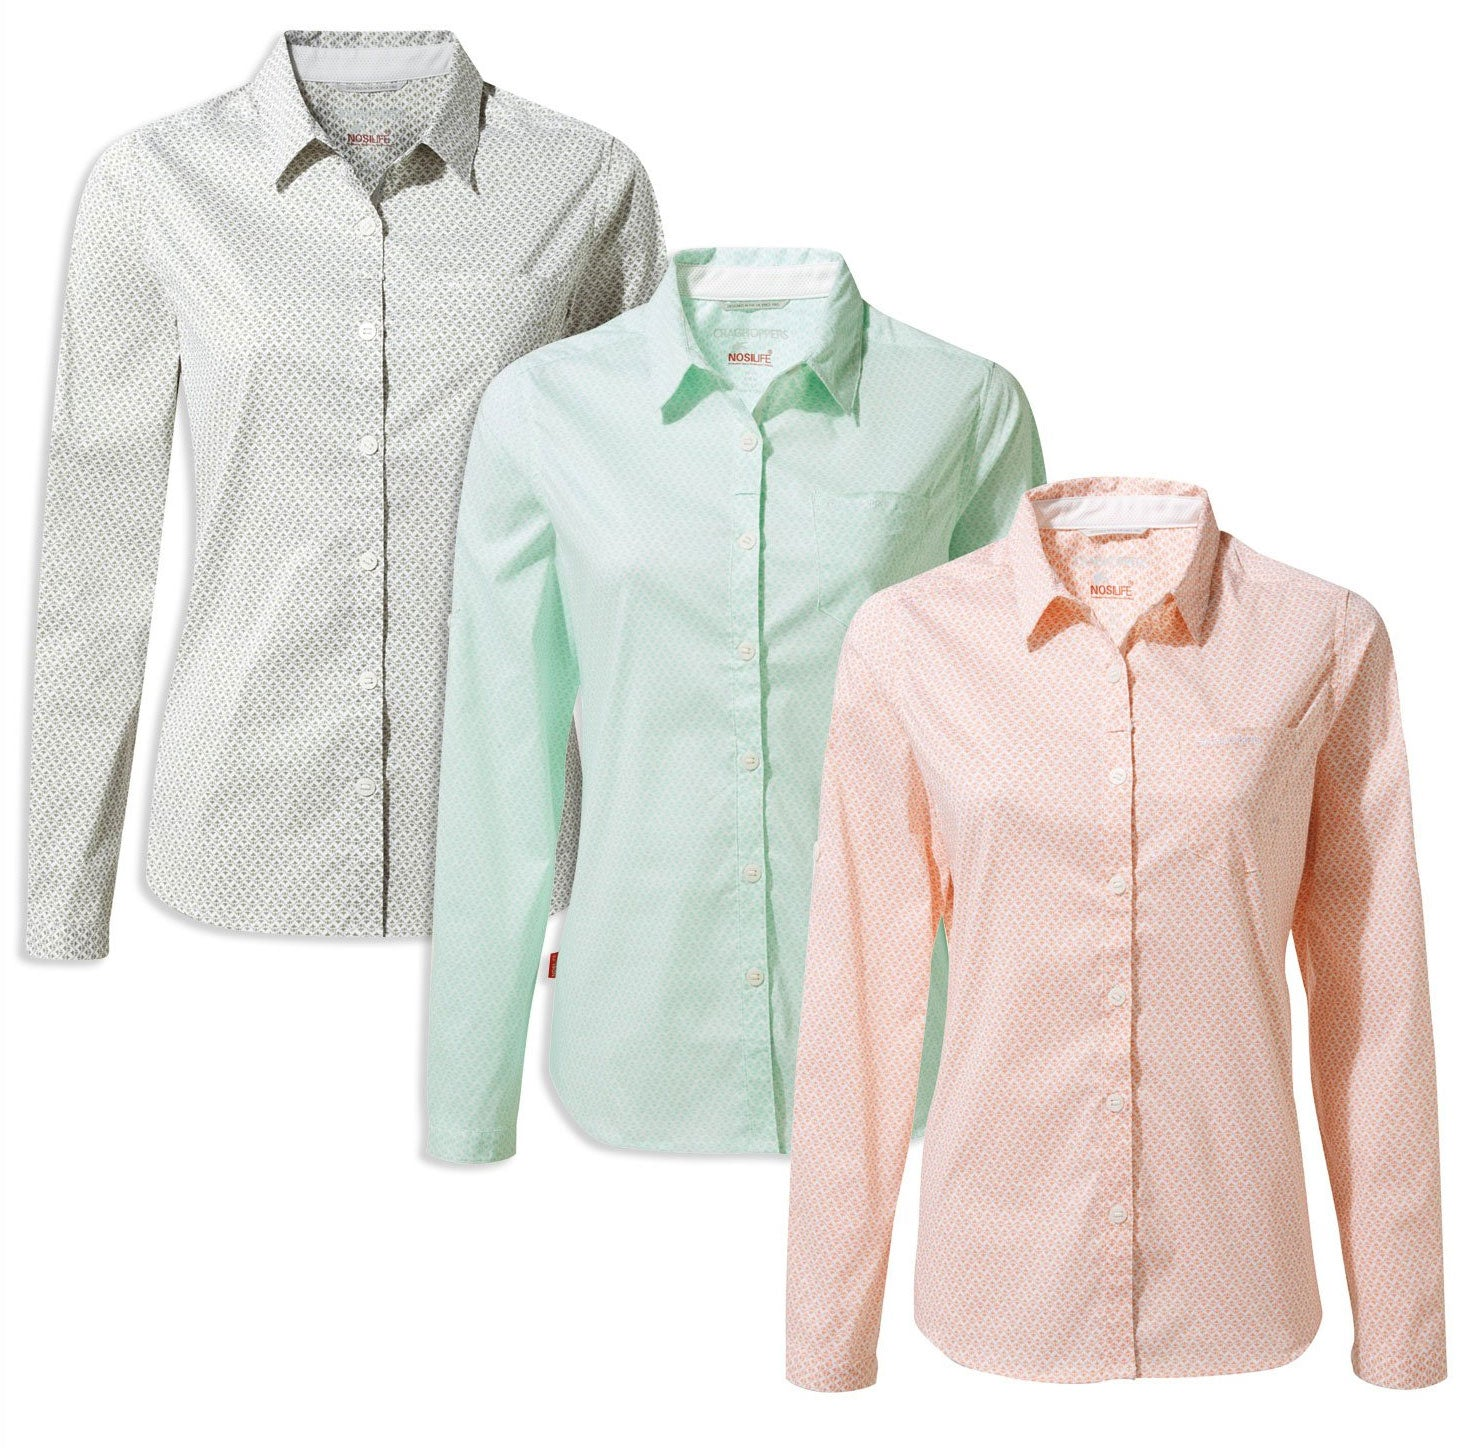 Craghoppers NosiLife Verona Long Sleeve Shirt - Pink Green and Blue